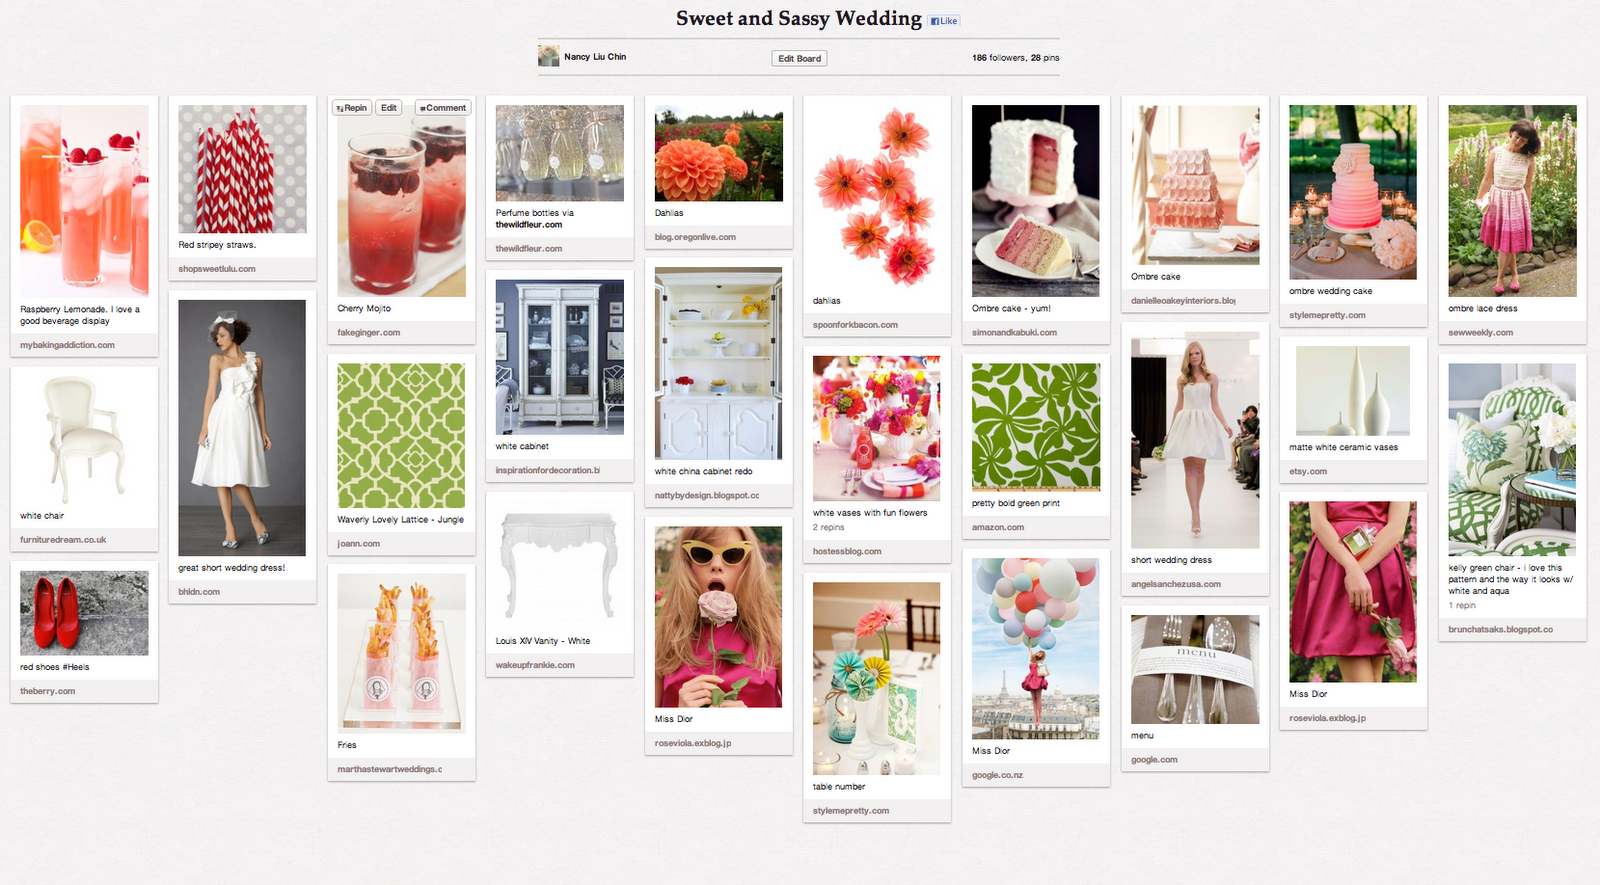 Using pinterest was a great way for us to share our thoughts with